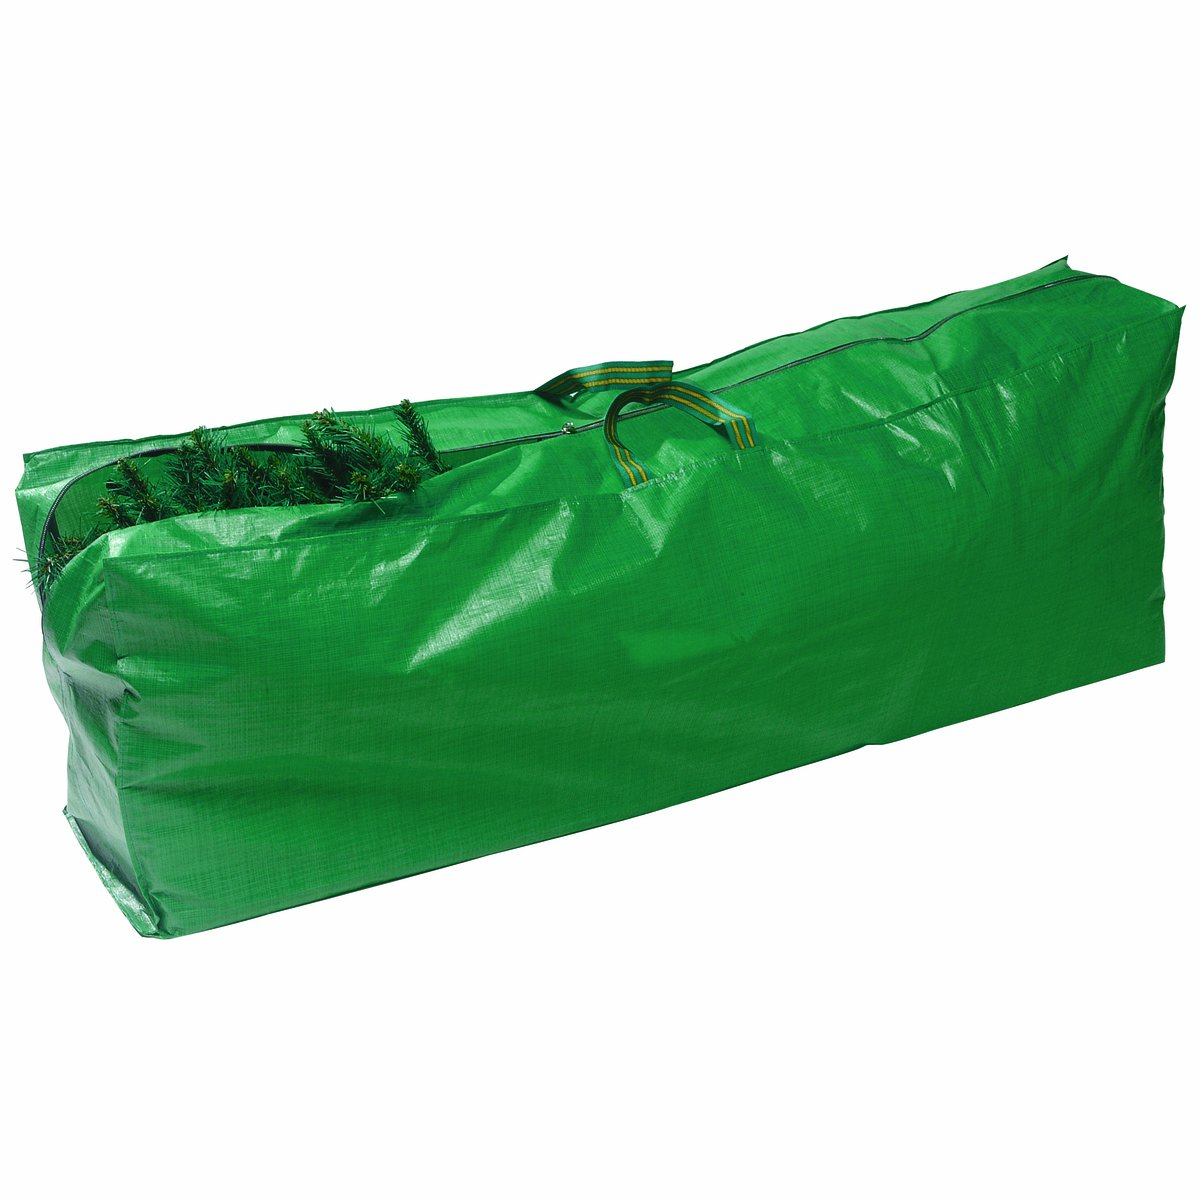 Bosmere G380 Christmas Tree Bag Bosmere Products Ltd